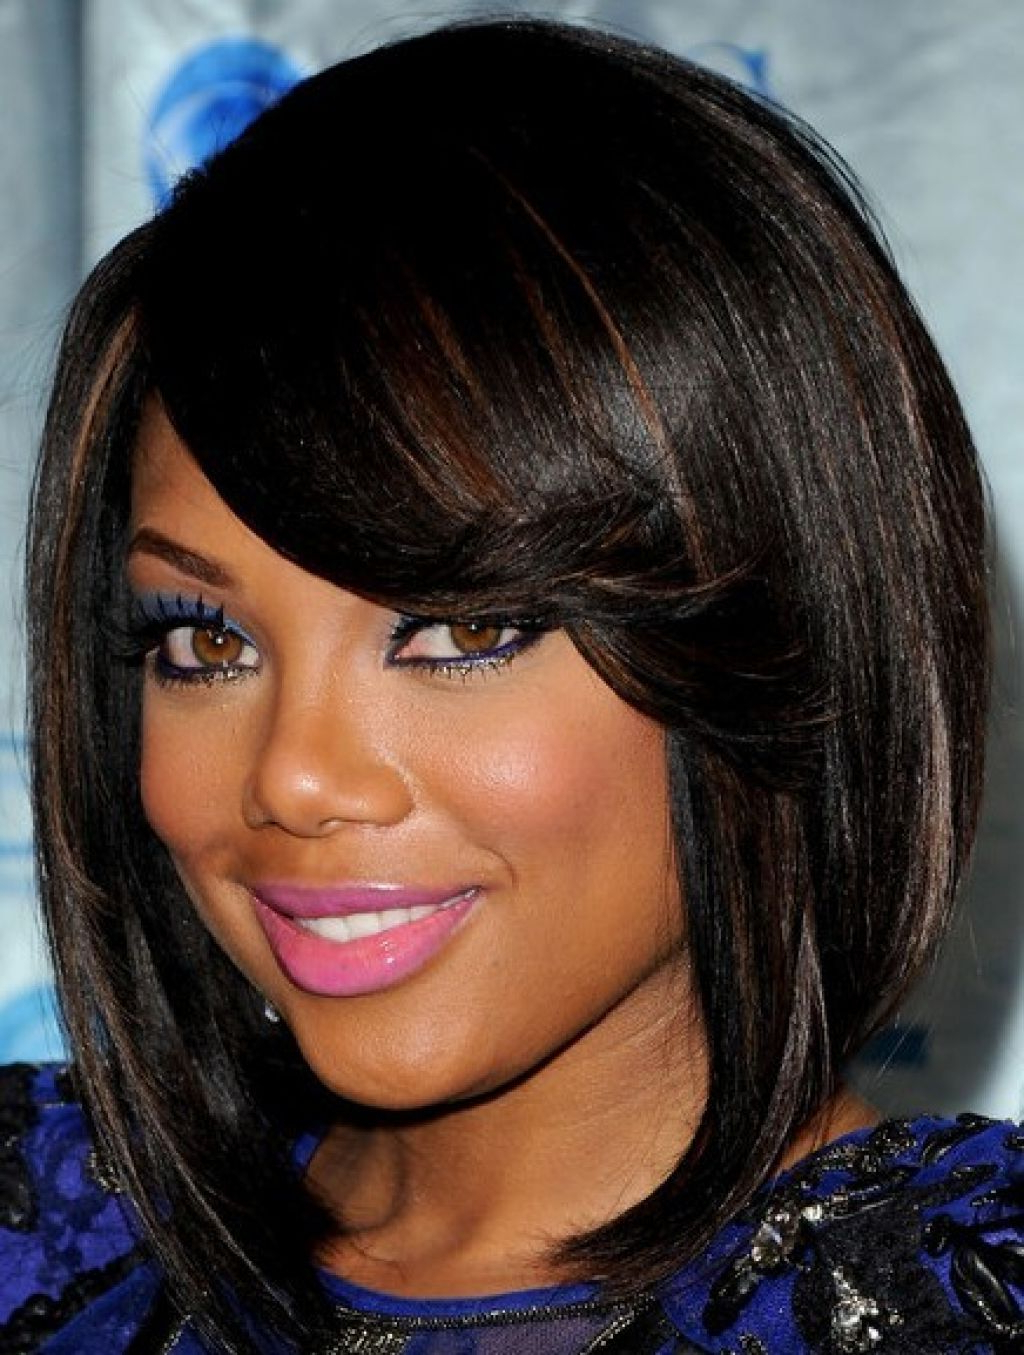 Most Current Medium Haircuts For Black Women Natural Hair Intended For 27 Short Hairstyles And Haircuts For Black Women Of Class (View 14 of 20)